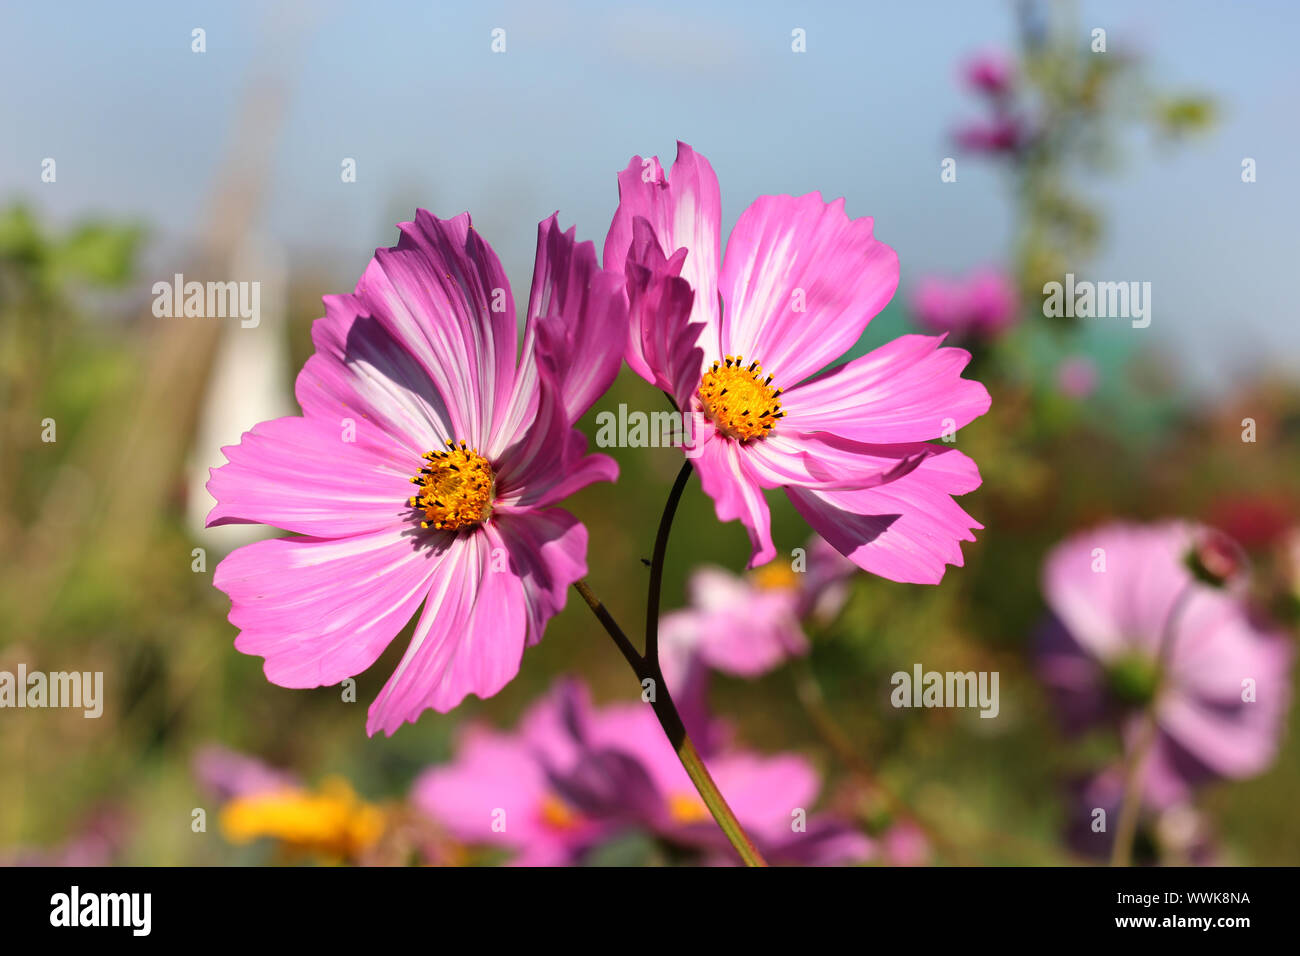 Flower heads of pink white bicoloured Cosmea. Stock Photo